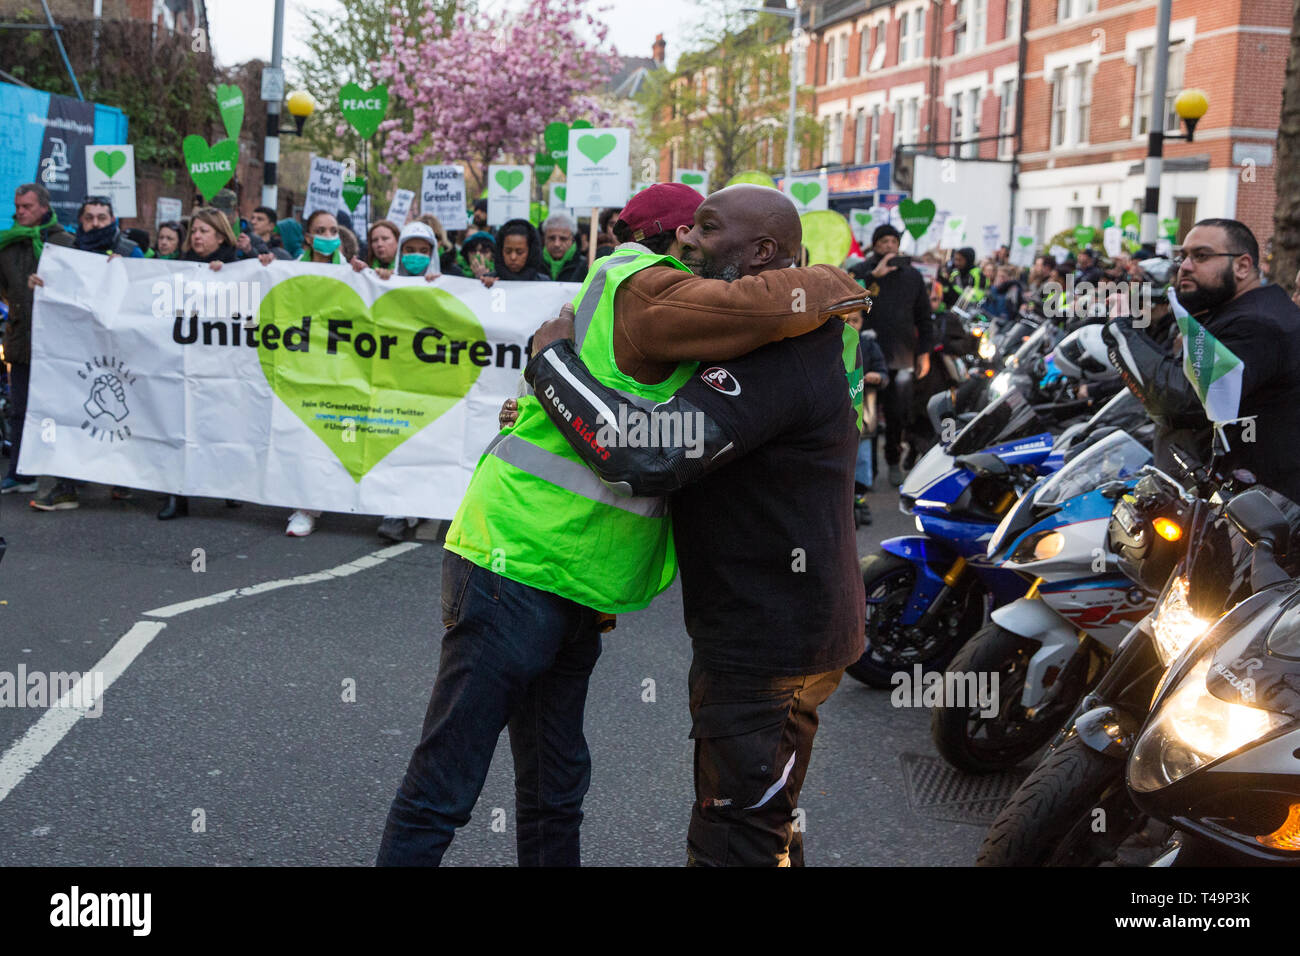 London, UK. 14th April 2019. Members of United Ride for Grenfell pay their respects to the Grenfell community and firefighters taking part in the Grenfell Silent Walk around North Kensington on the monthly anniversary of the fire on 14th June 2017. 72 people died in the Grenfell Tower fire and over 70 were injured. Credit: Mark Kerrison/Alamy Live News - Stock Image